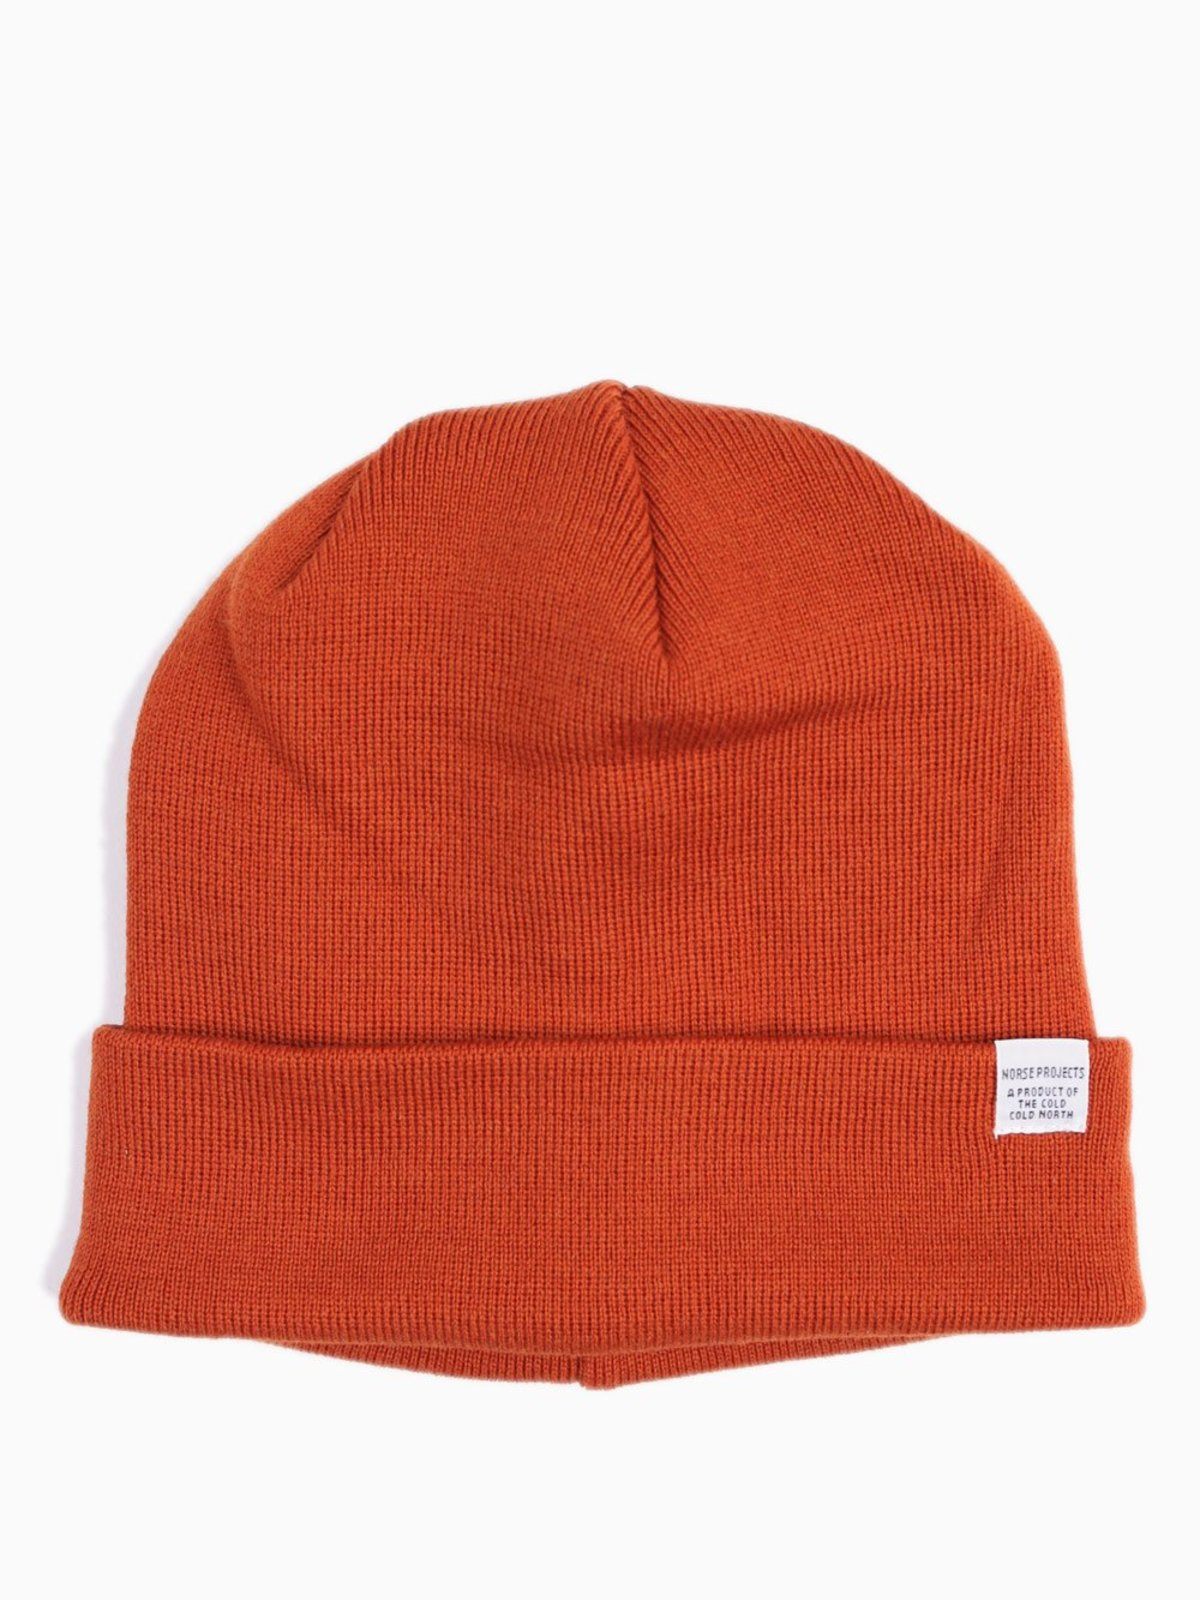 235862ac64801 Norse Projects Norse Top Beanie Ochre